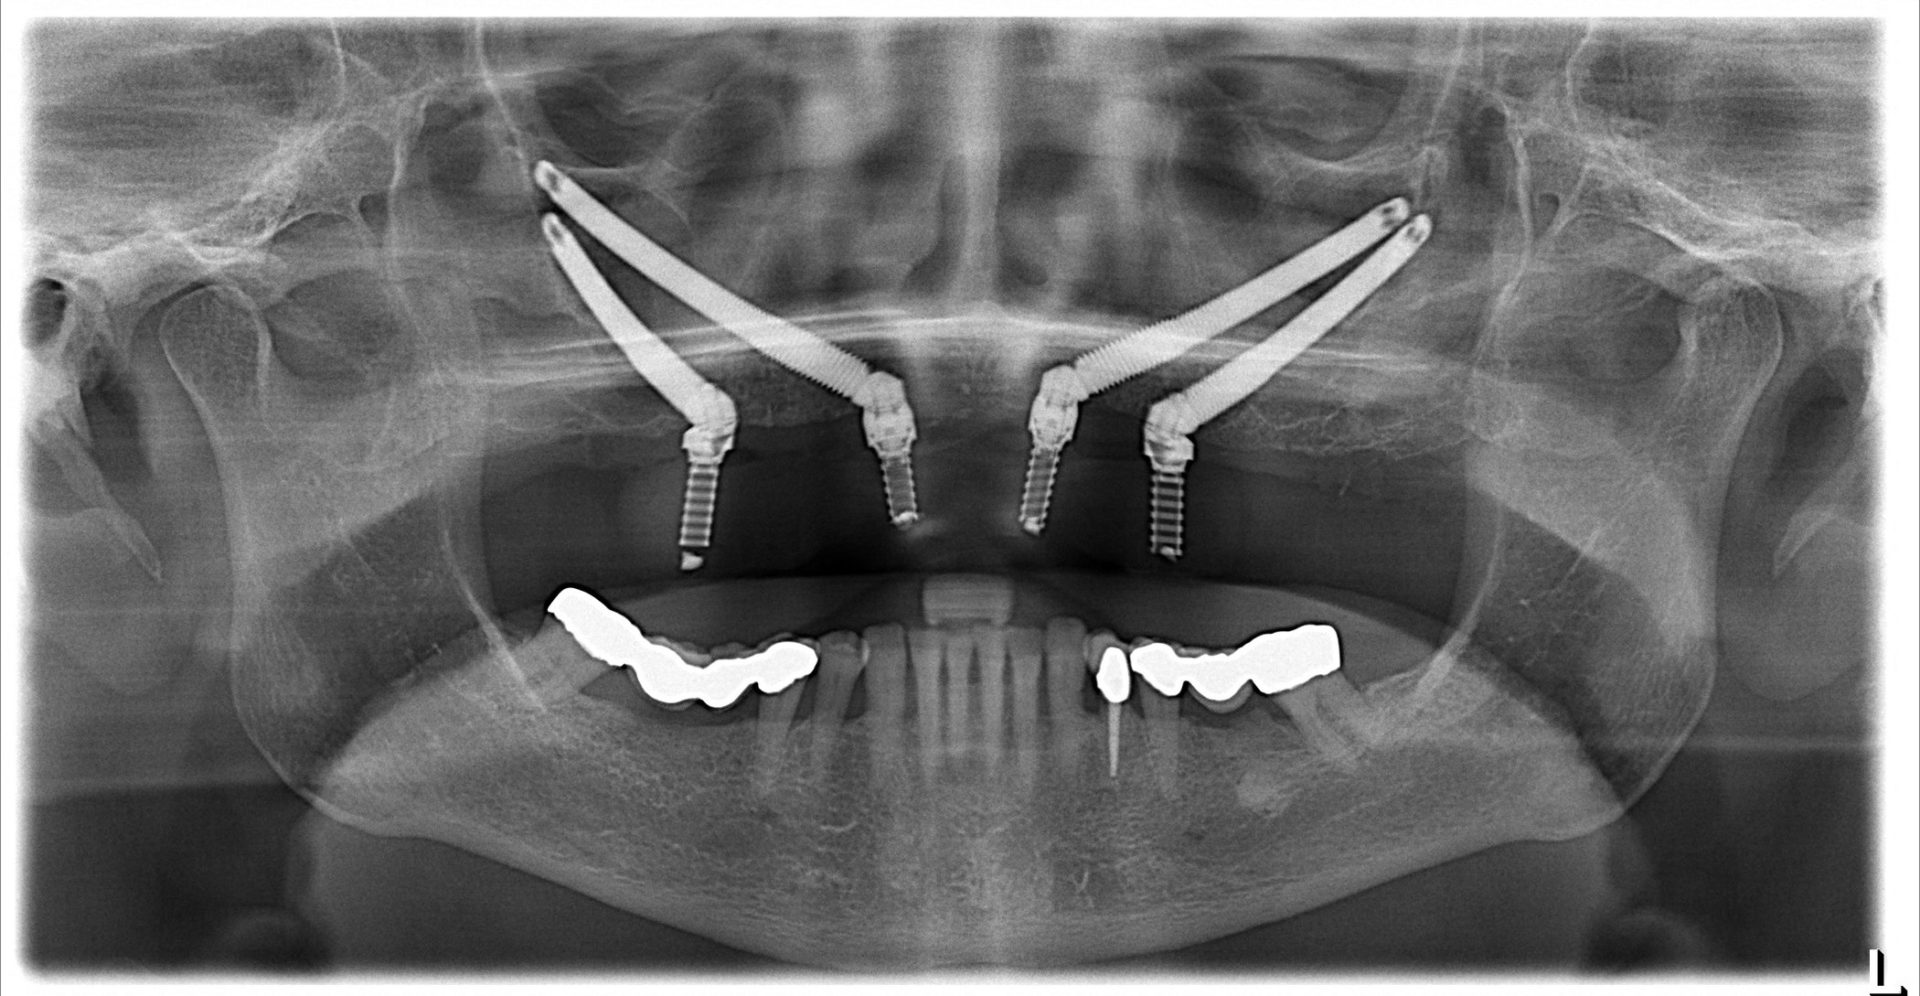 Why you might need zygomatic implants?